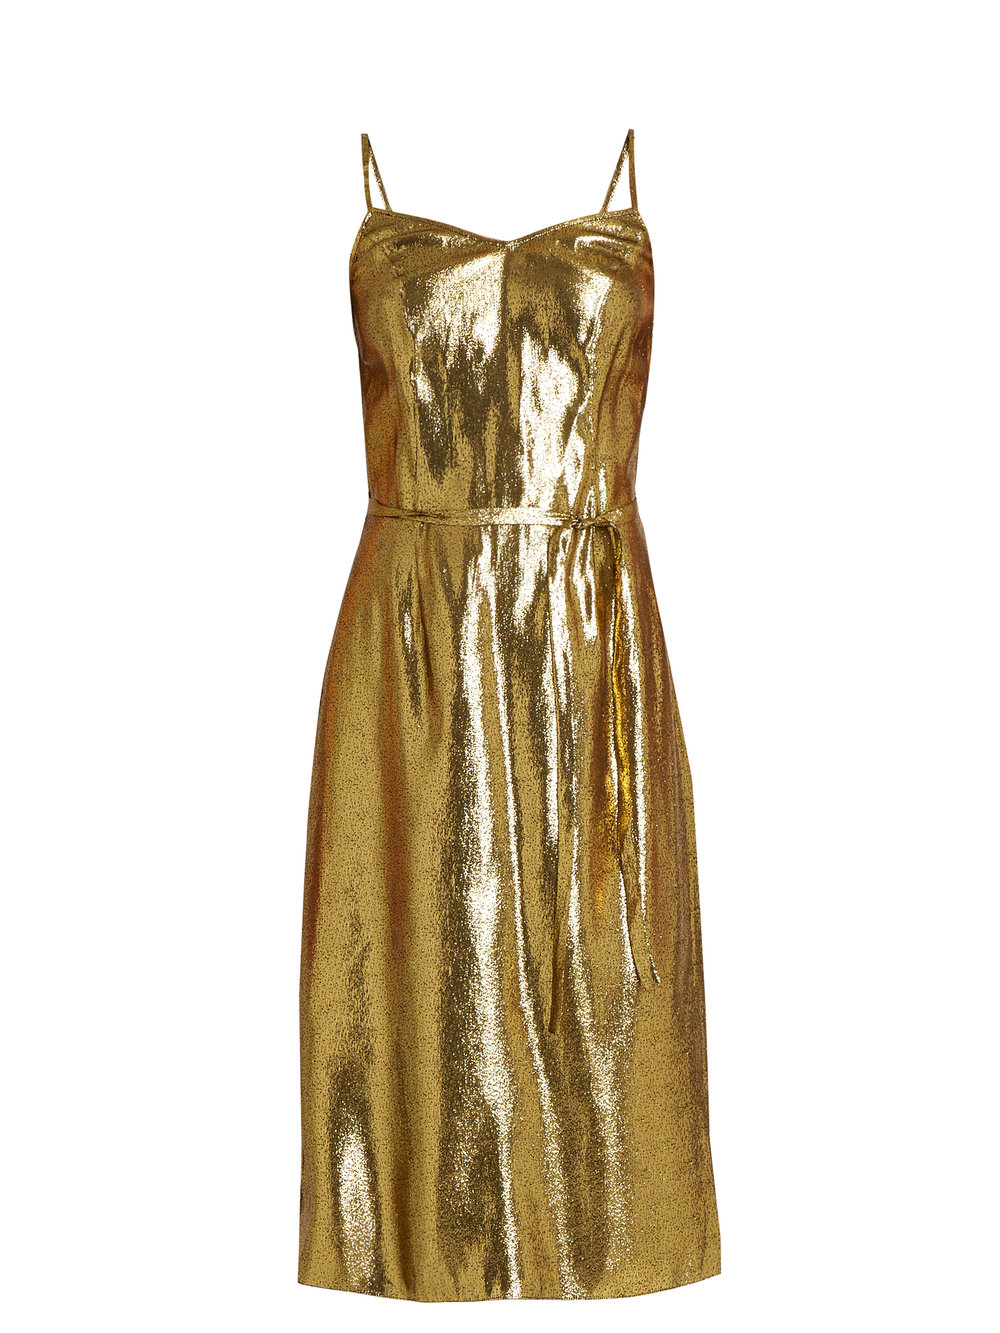 GOLD METALLIC - SHOP NOW